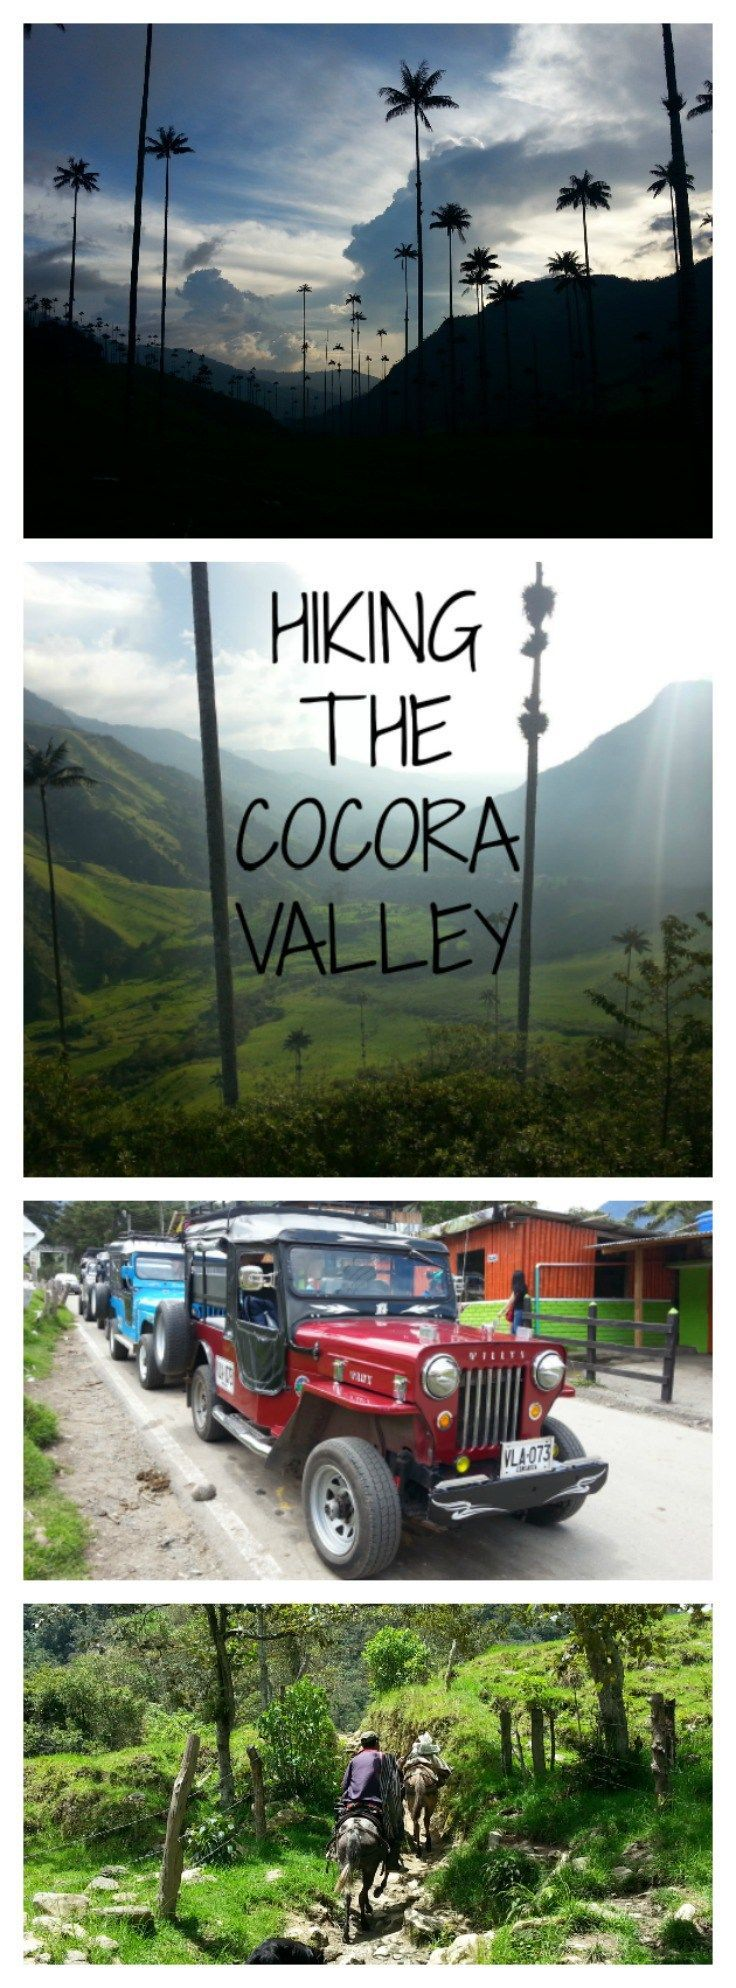 Hiking the Cocora Valley Colombia